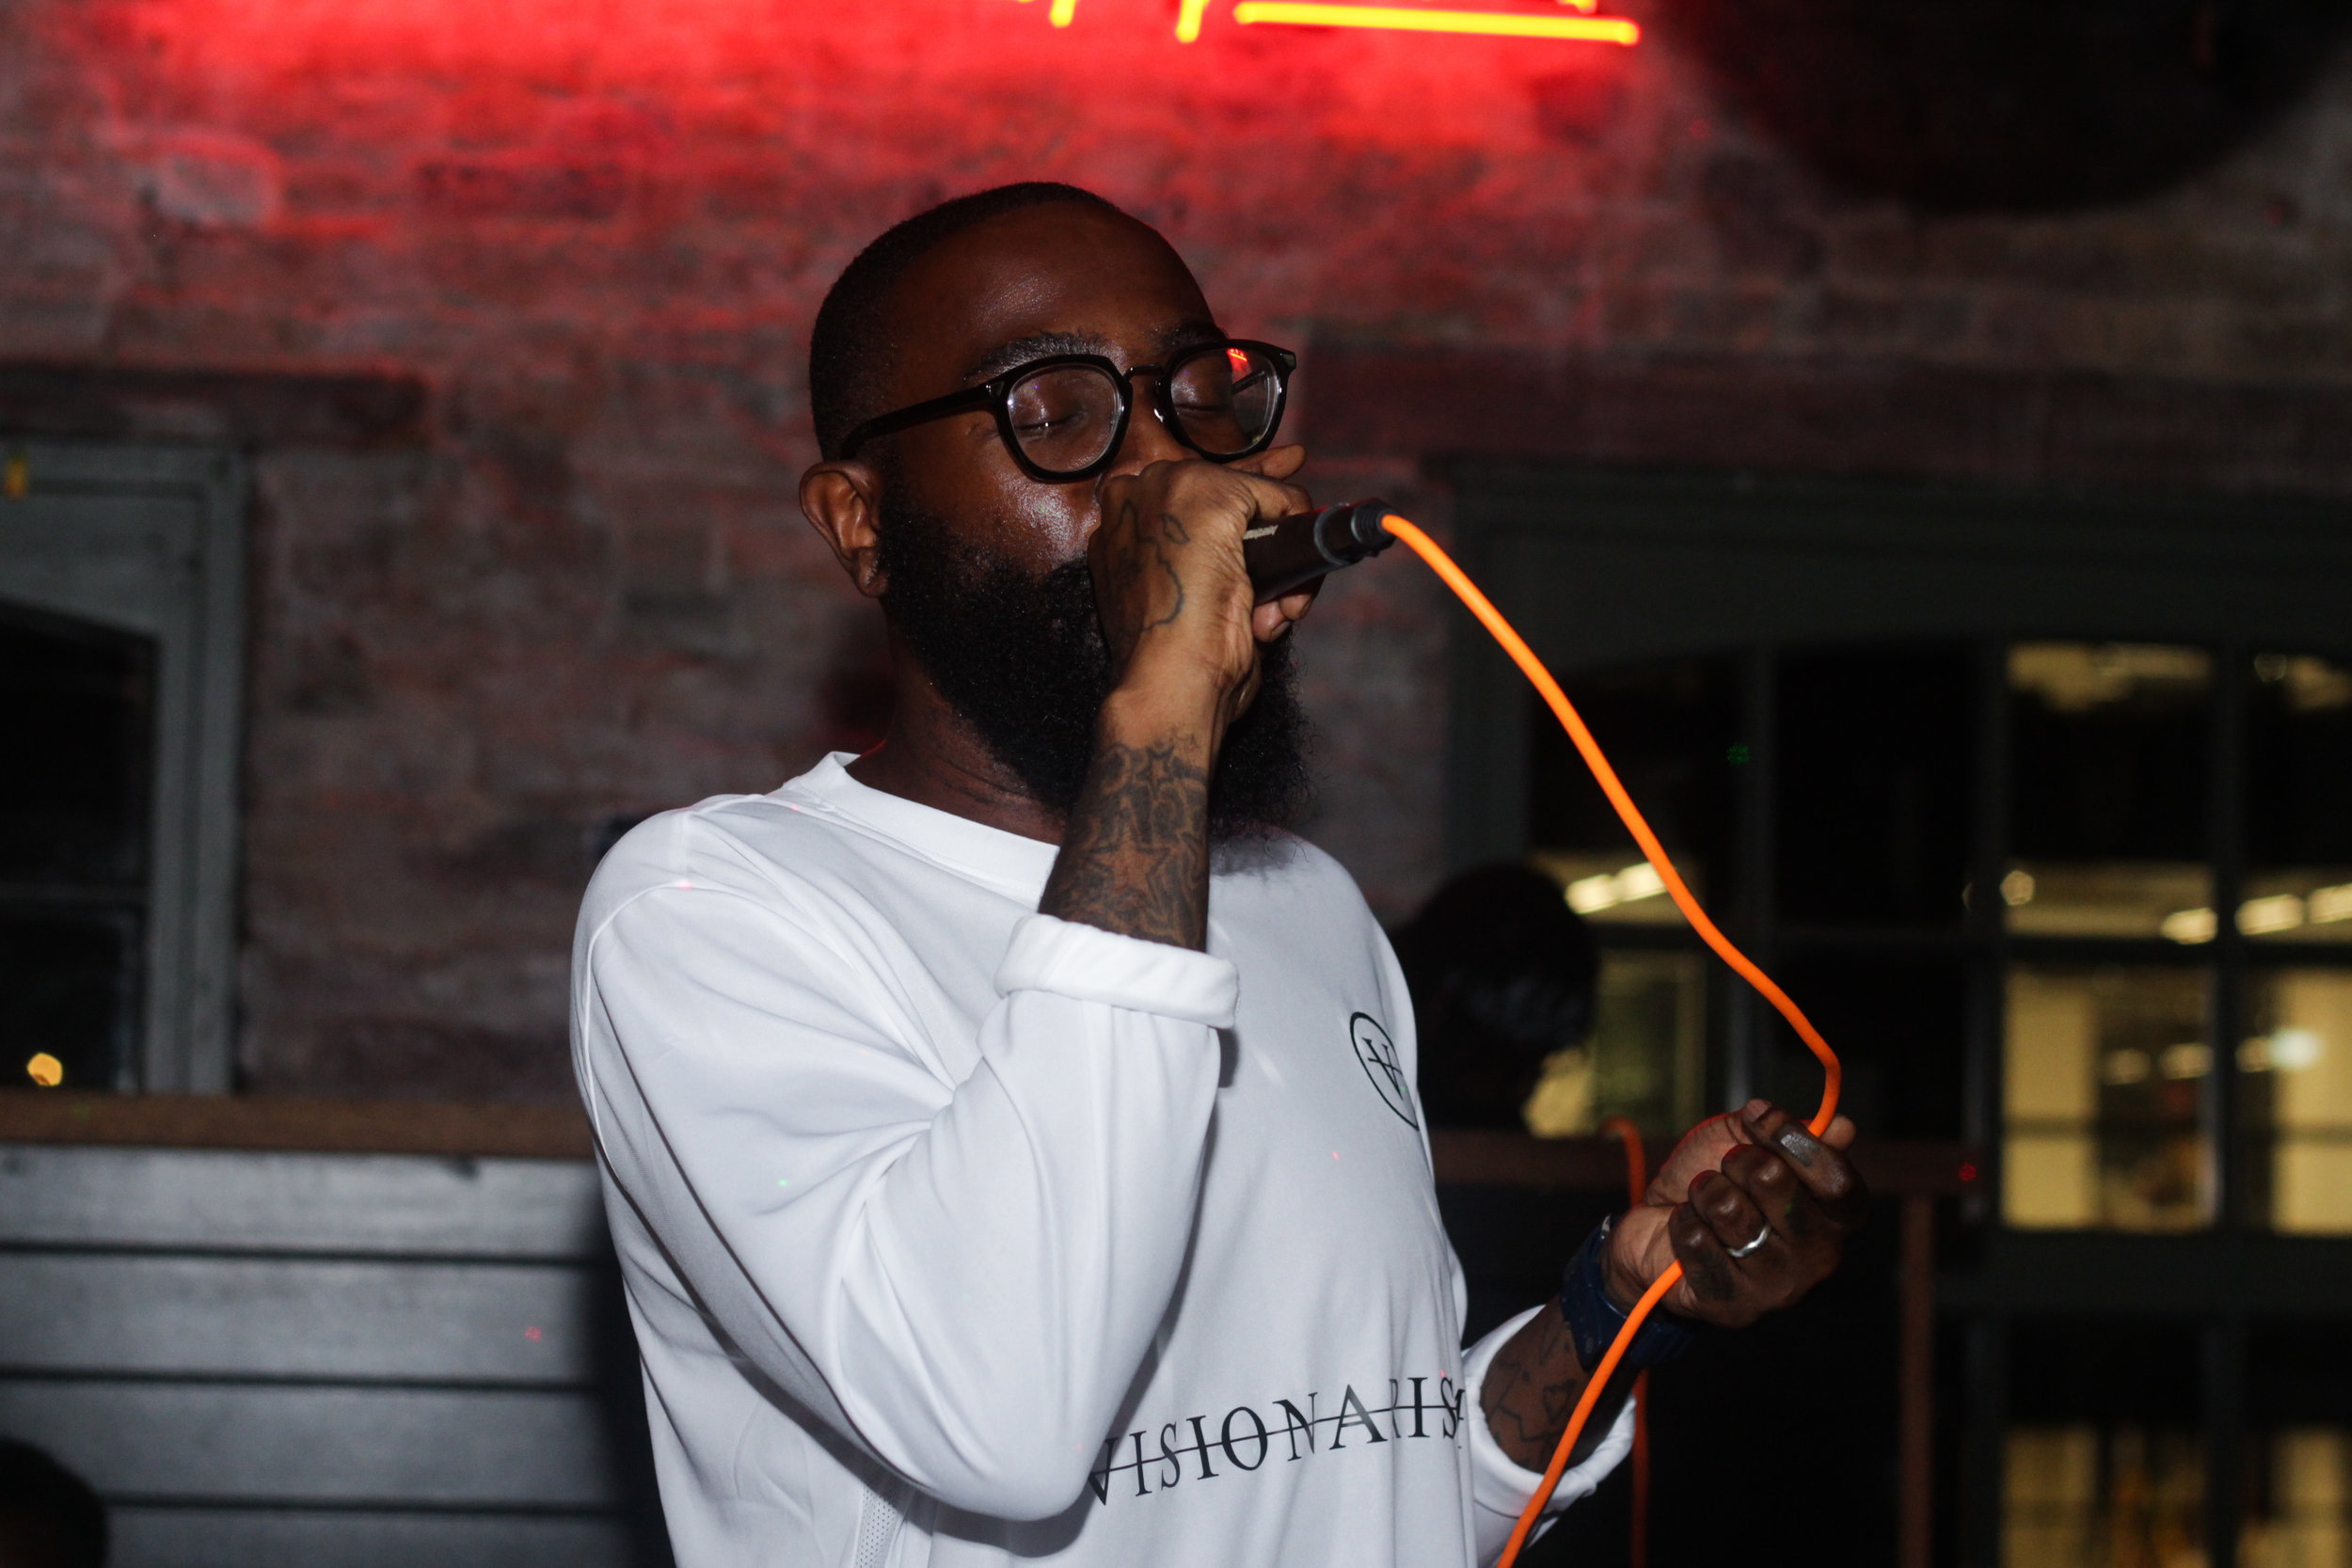 Our second event for Rebel Yell Bourbon was a GRM takeover that involved leading artist performances -